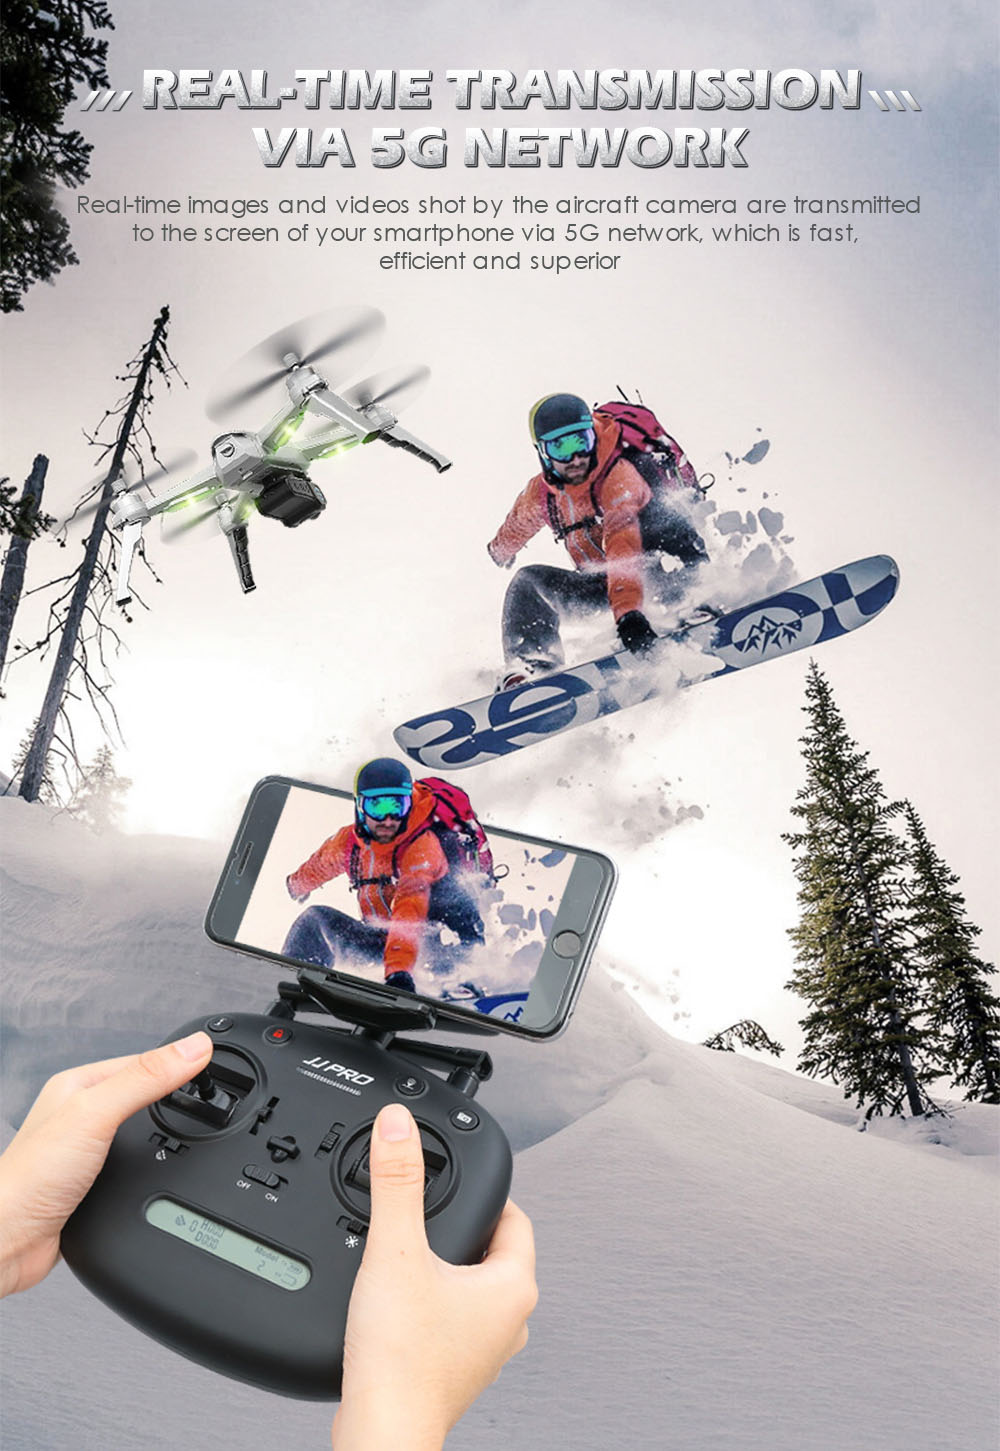 JJRC JJPRO X5 RC Drone 5G WiFi FPV Drones GPS Positioning Altitude Hold 1080P Camera Point of Interesting Follow Brushless Motor 14